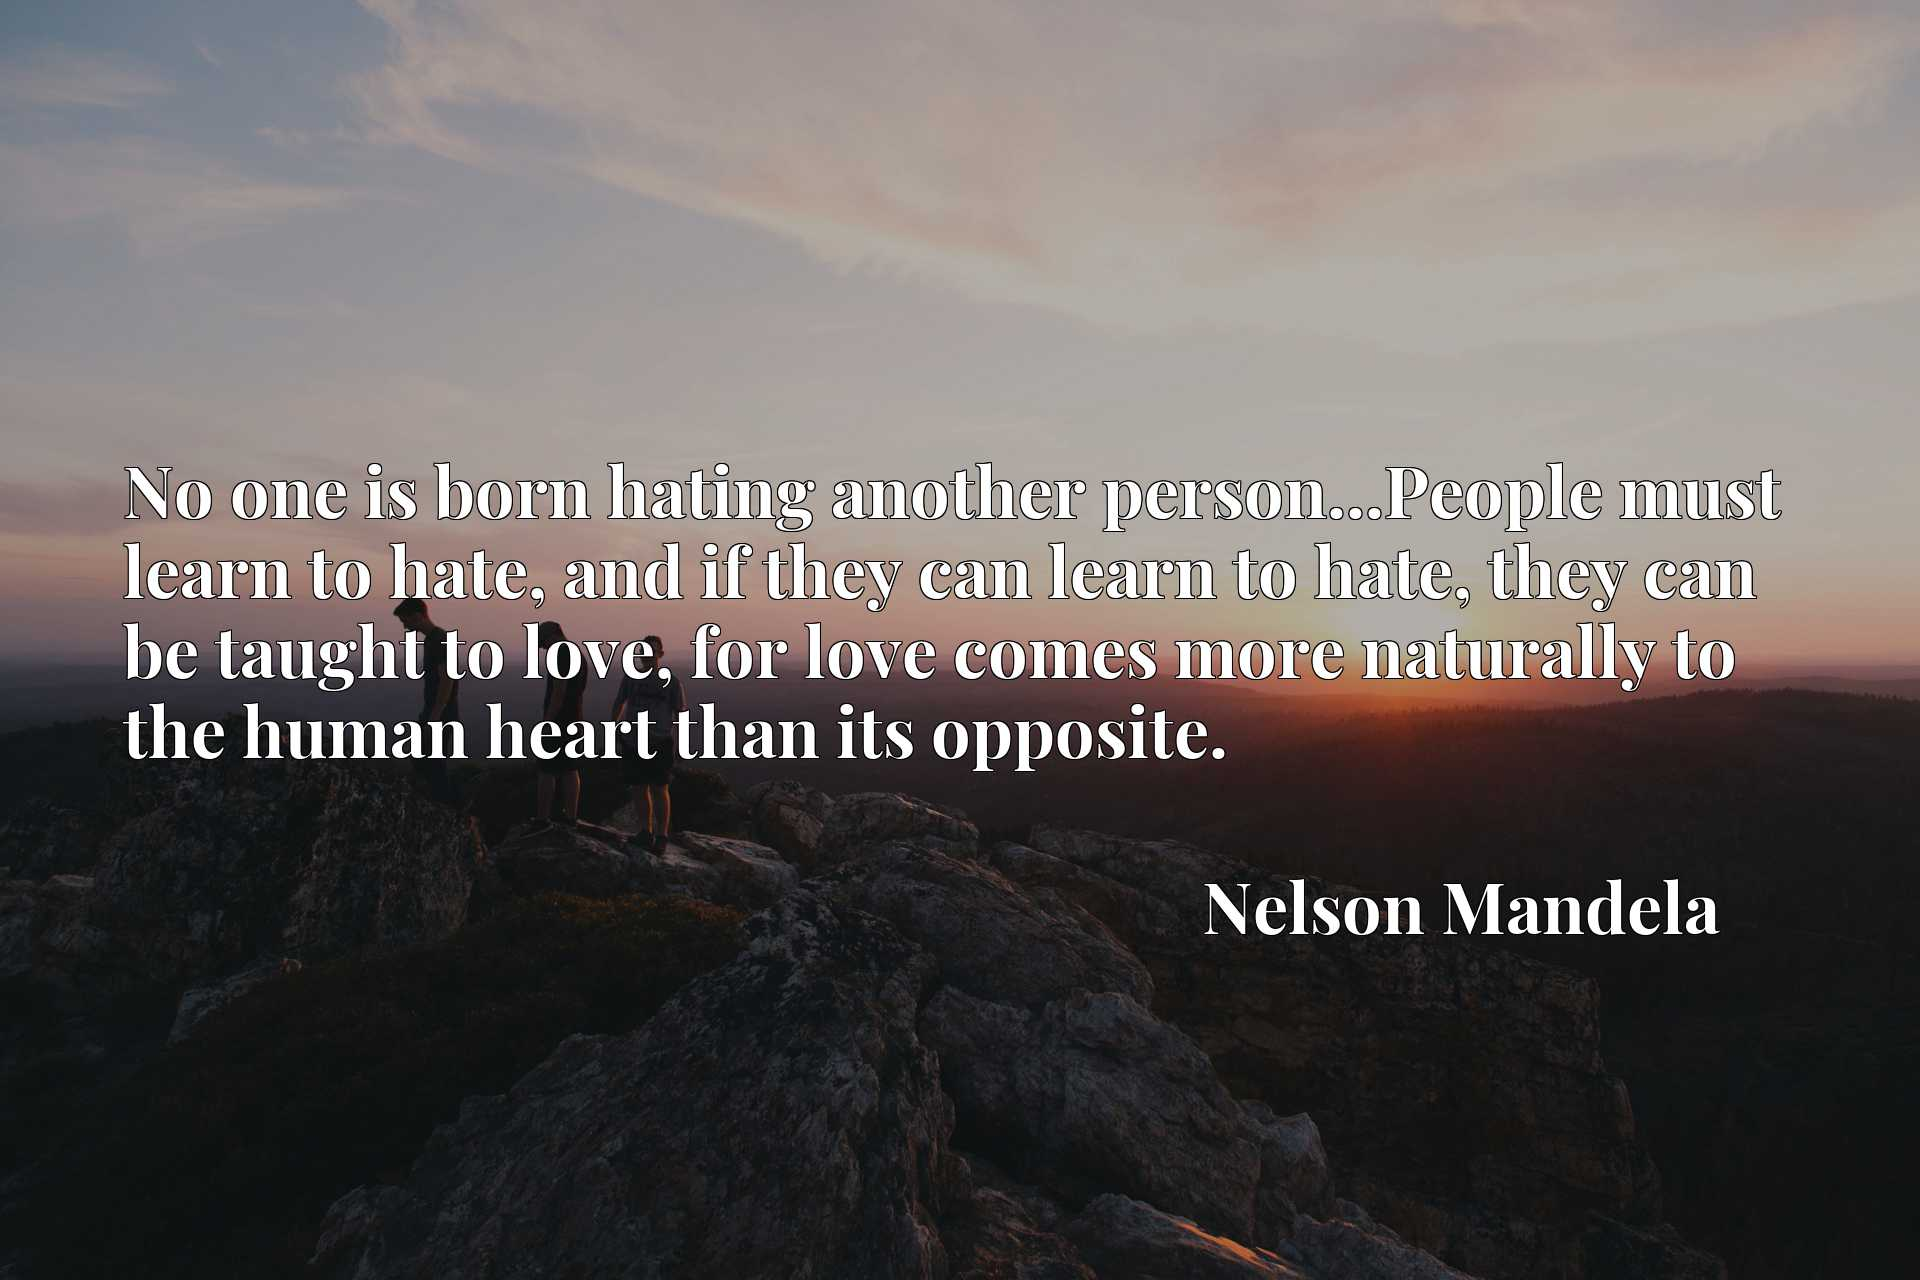 No one is born hating another person...People must learn to hate, and if they can learn to hate, they can be taught to love, for love comes more naturally to the human heart than its opposite.